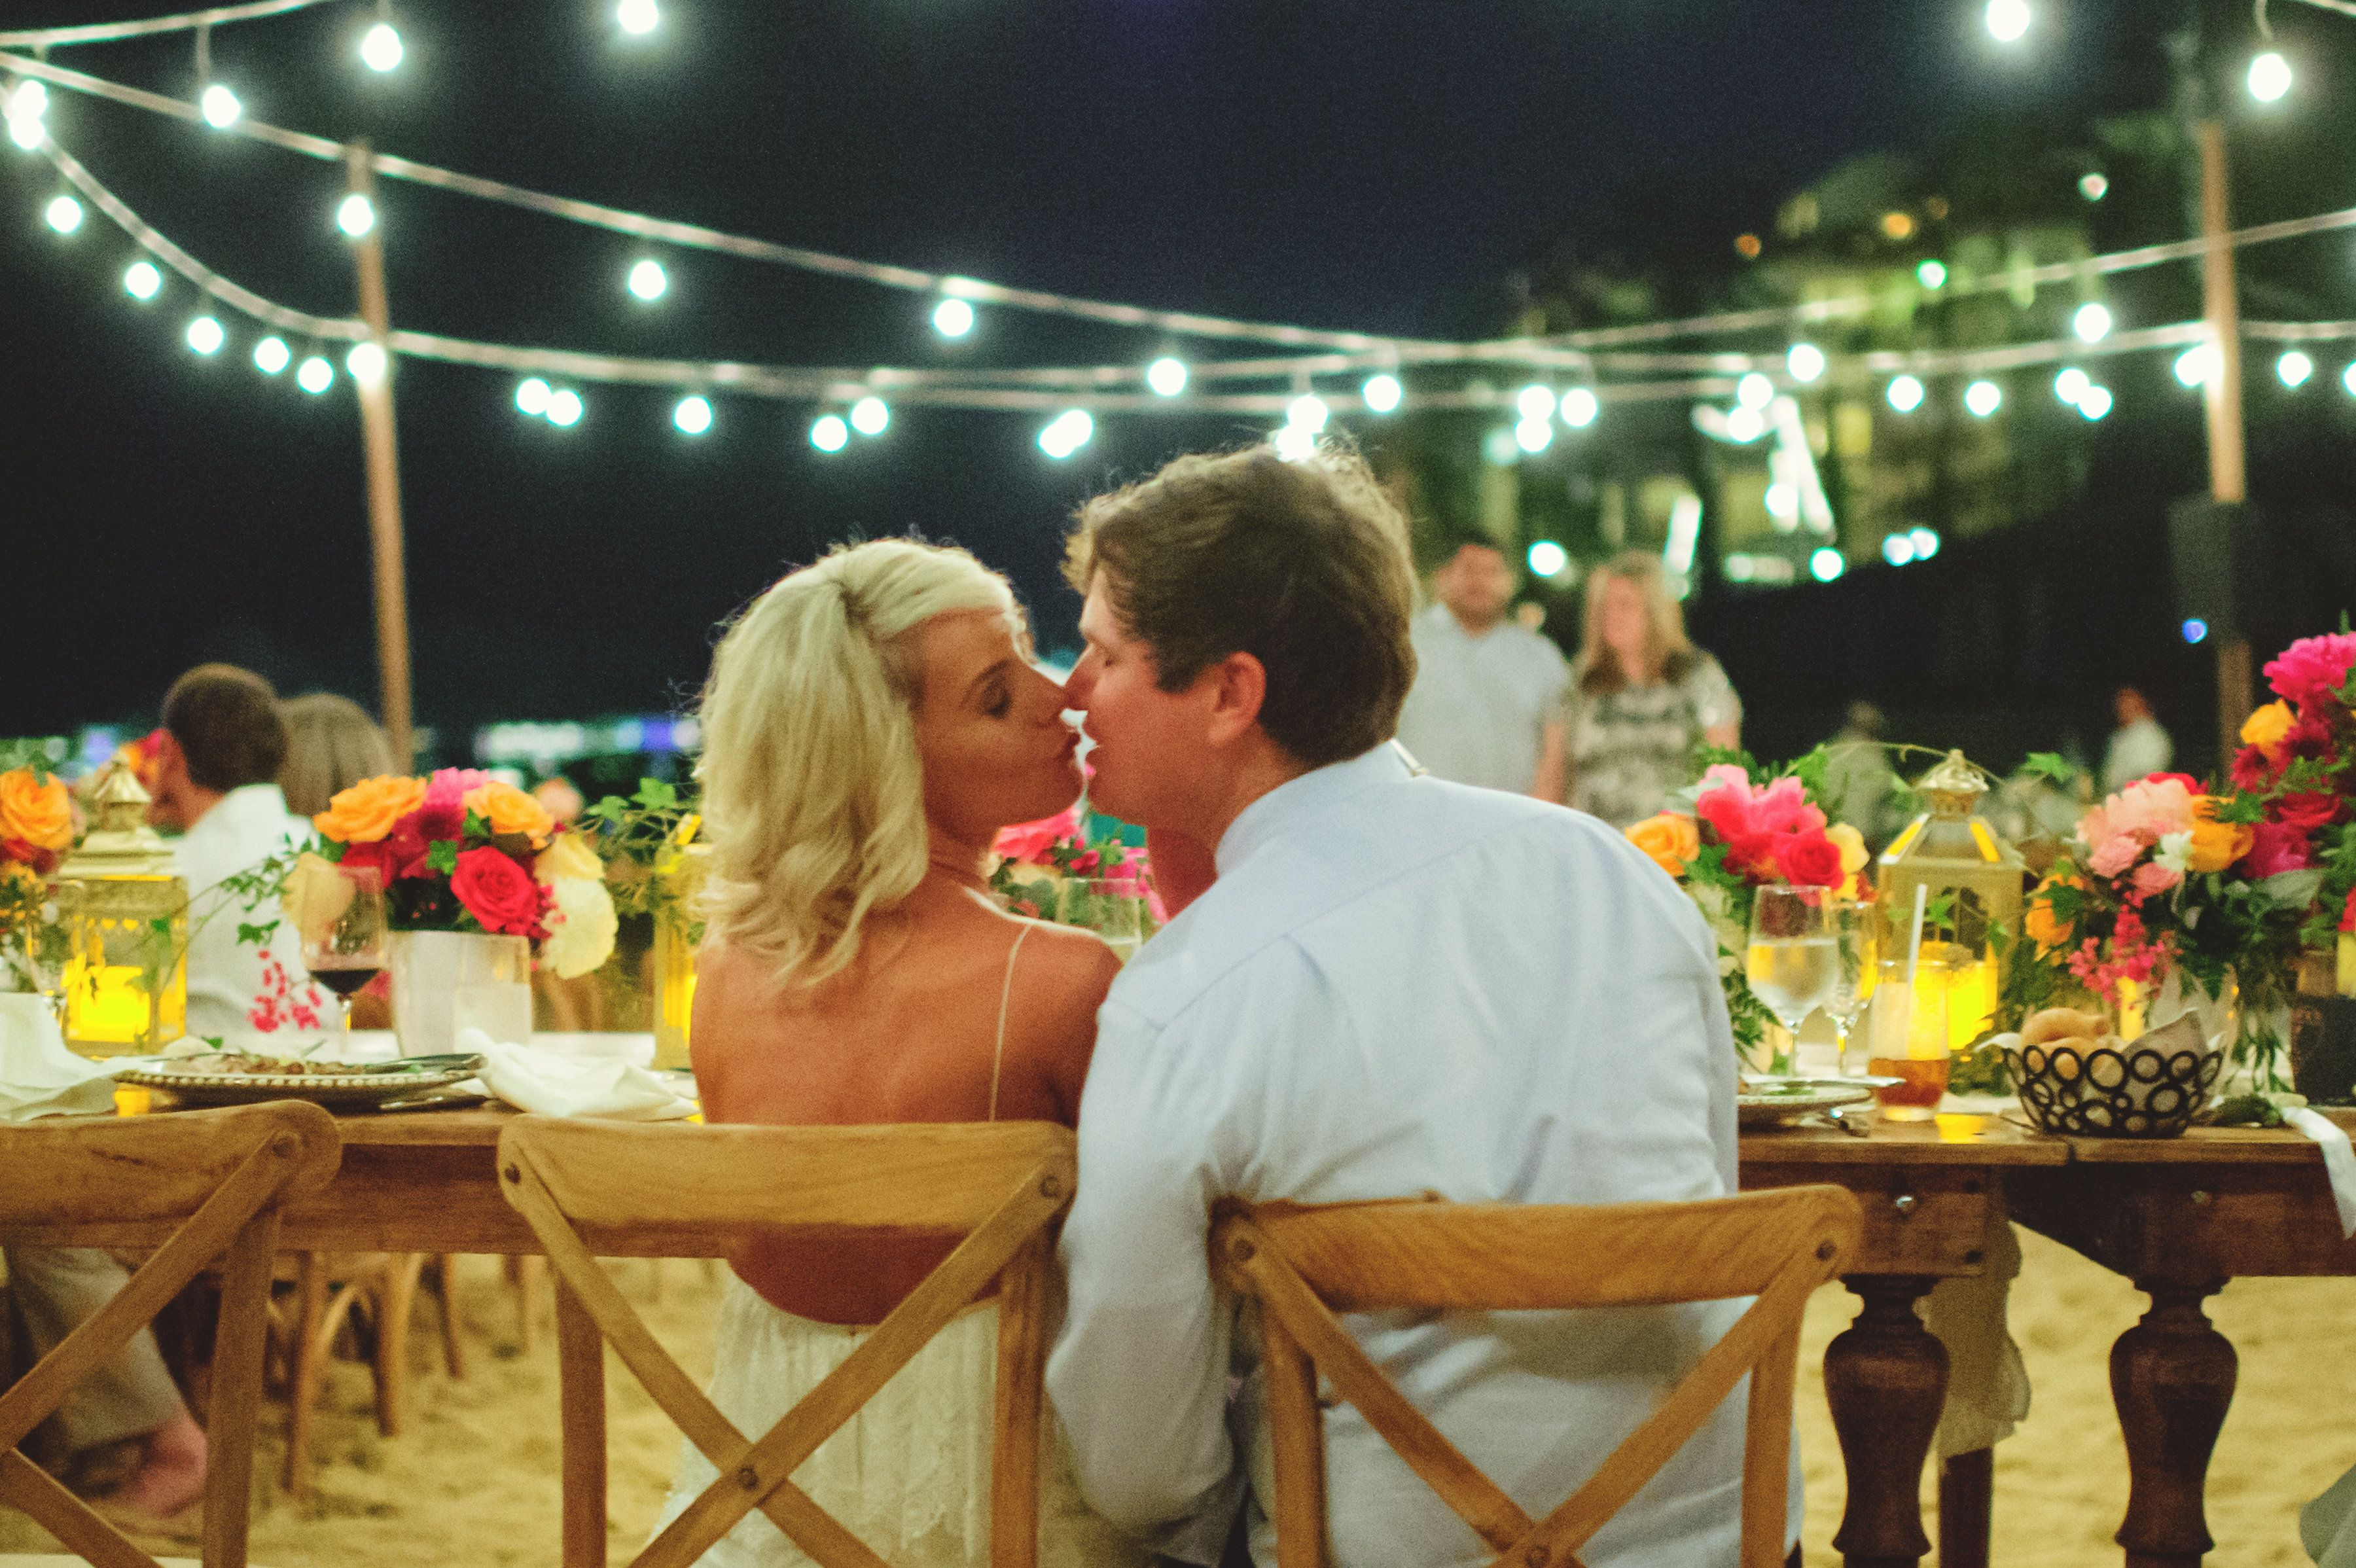 bride and groom kissing at wedding reception. Design by Cabo Wedding Services